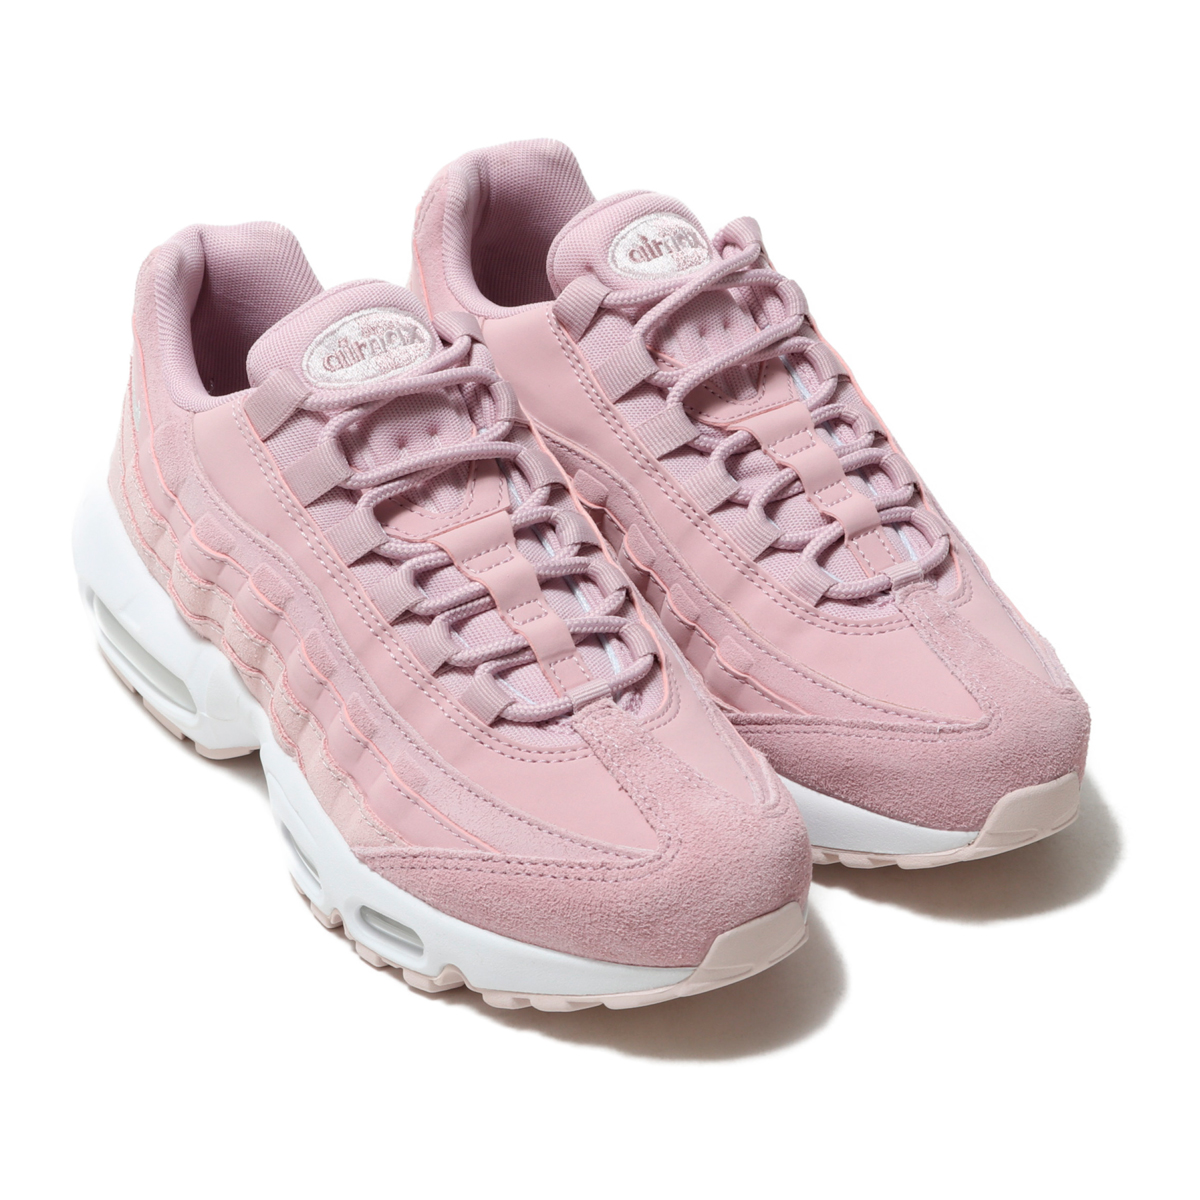 Nike Shoes | Nike Air Max 95 Women'S Shoes Barely Rose